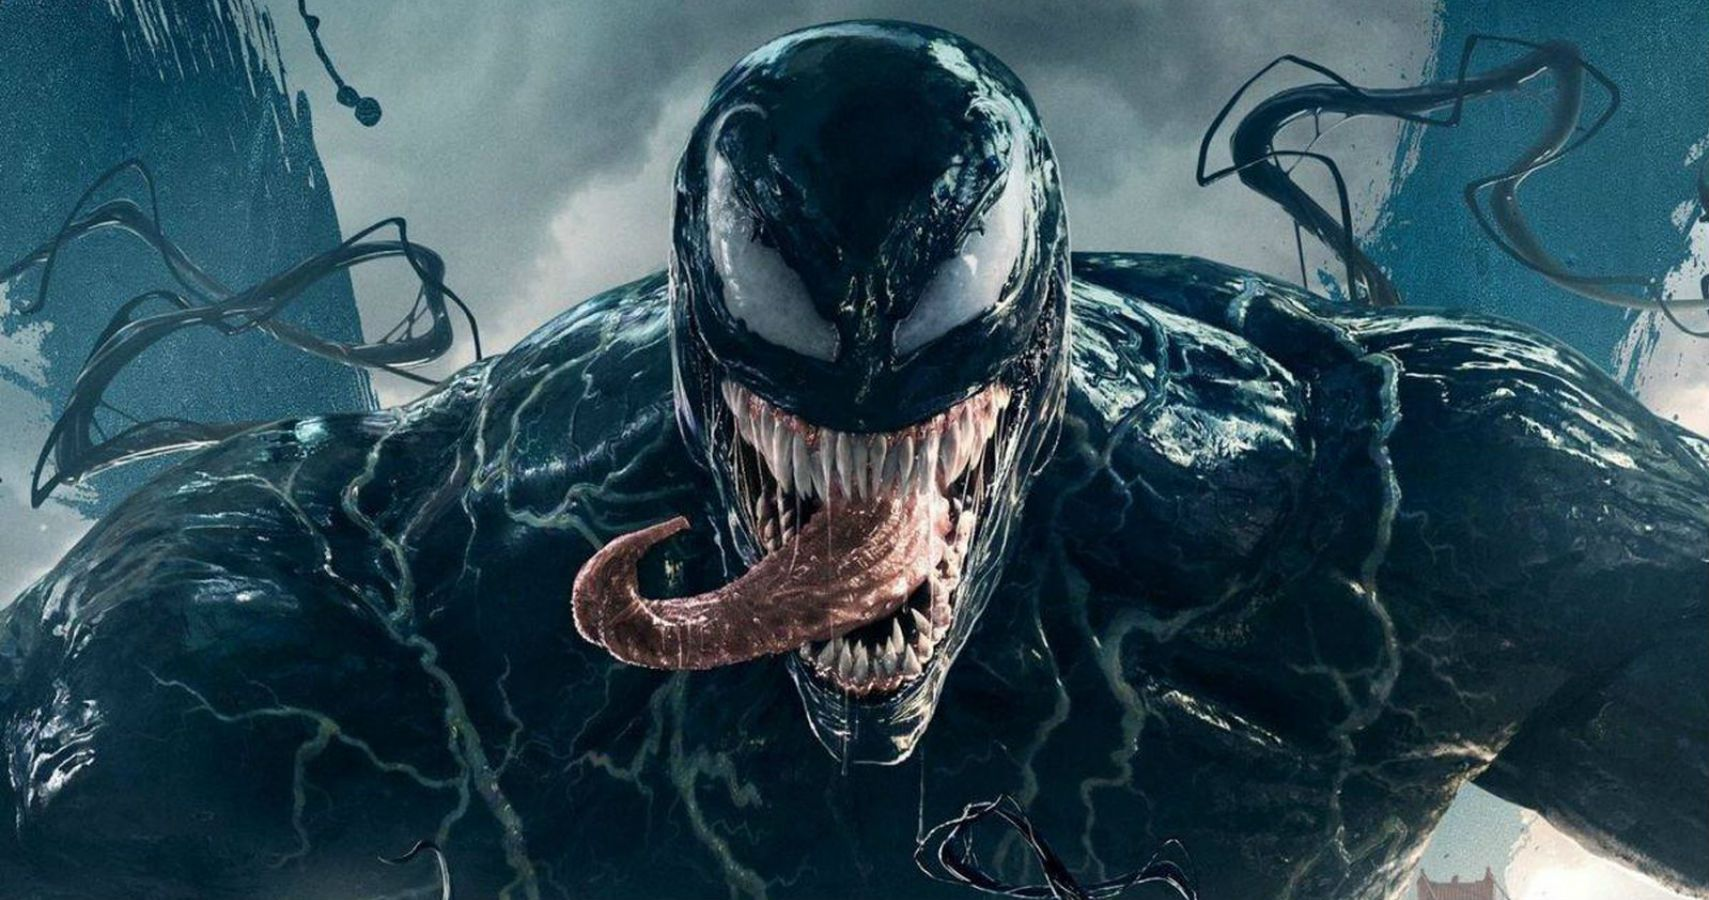 Brad Venable Was The Voice Of Venom In Venom (2018), But Was Uncredited